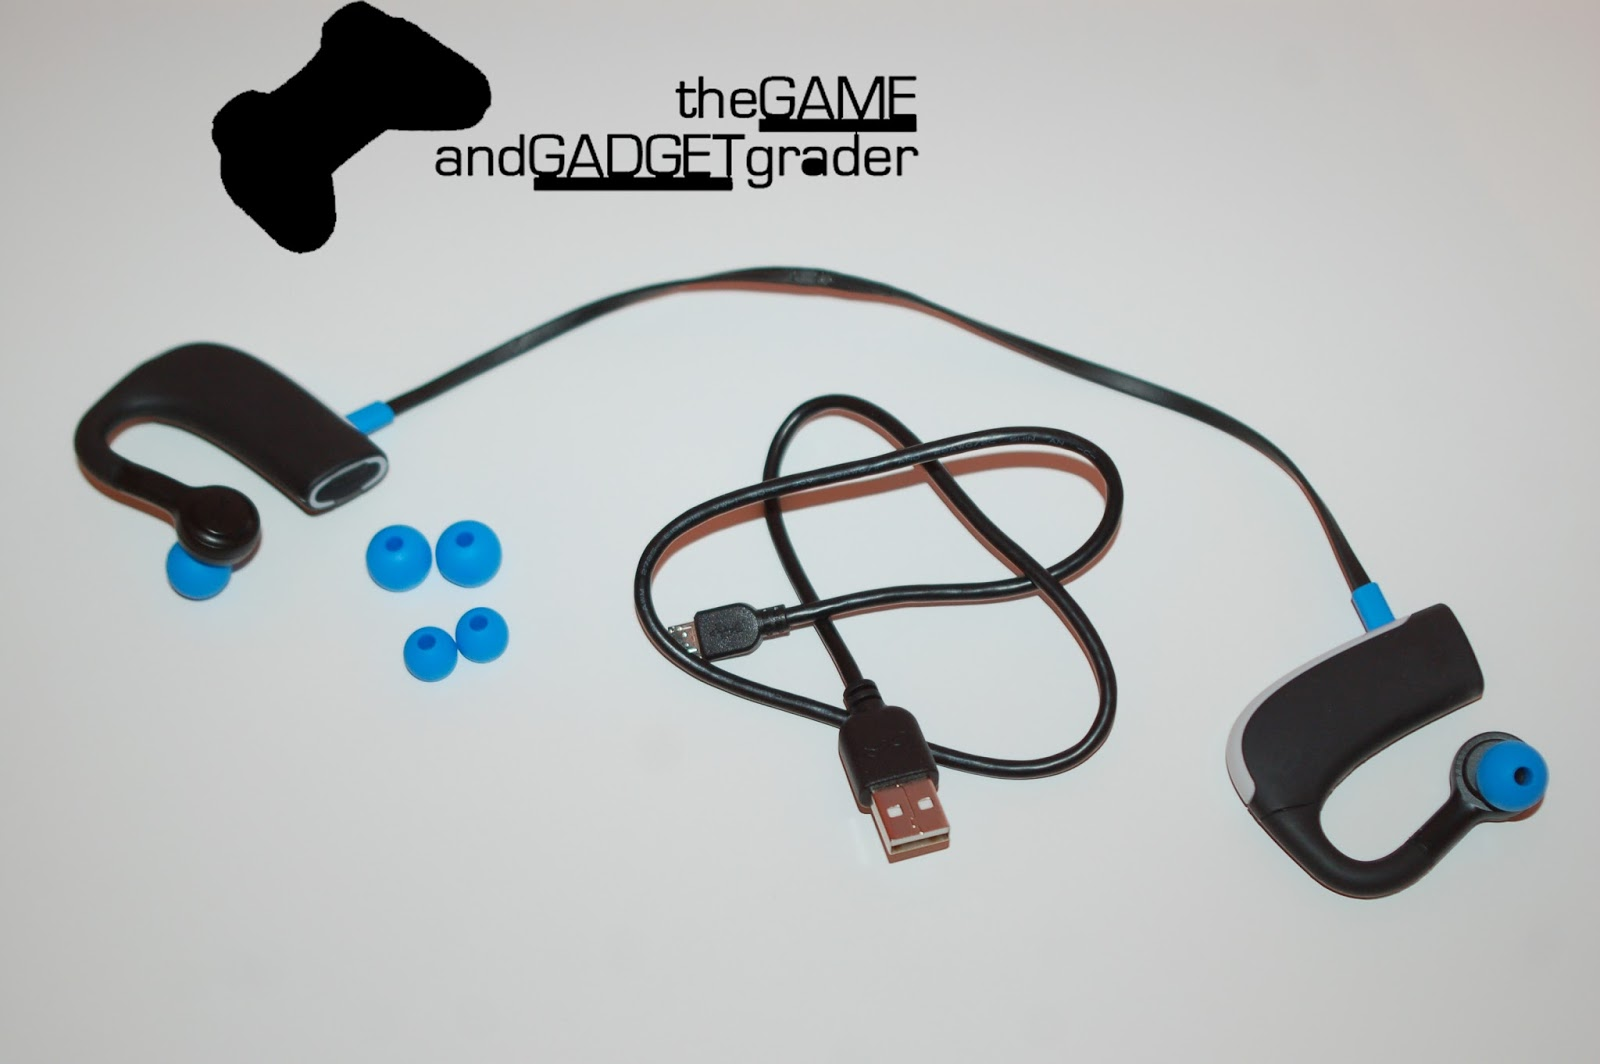 Blueant Pump 2 Wireless Hd Sportbuds Review The Game And Gadget Grader